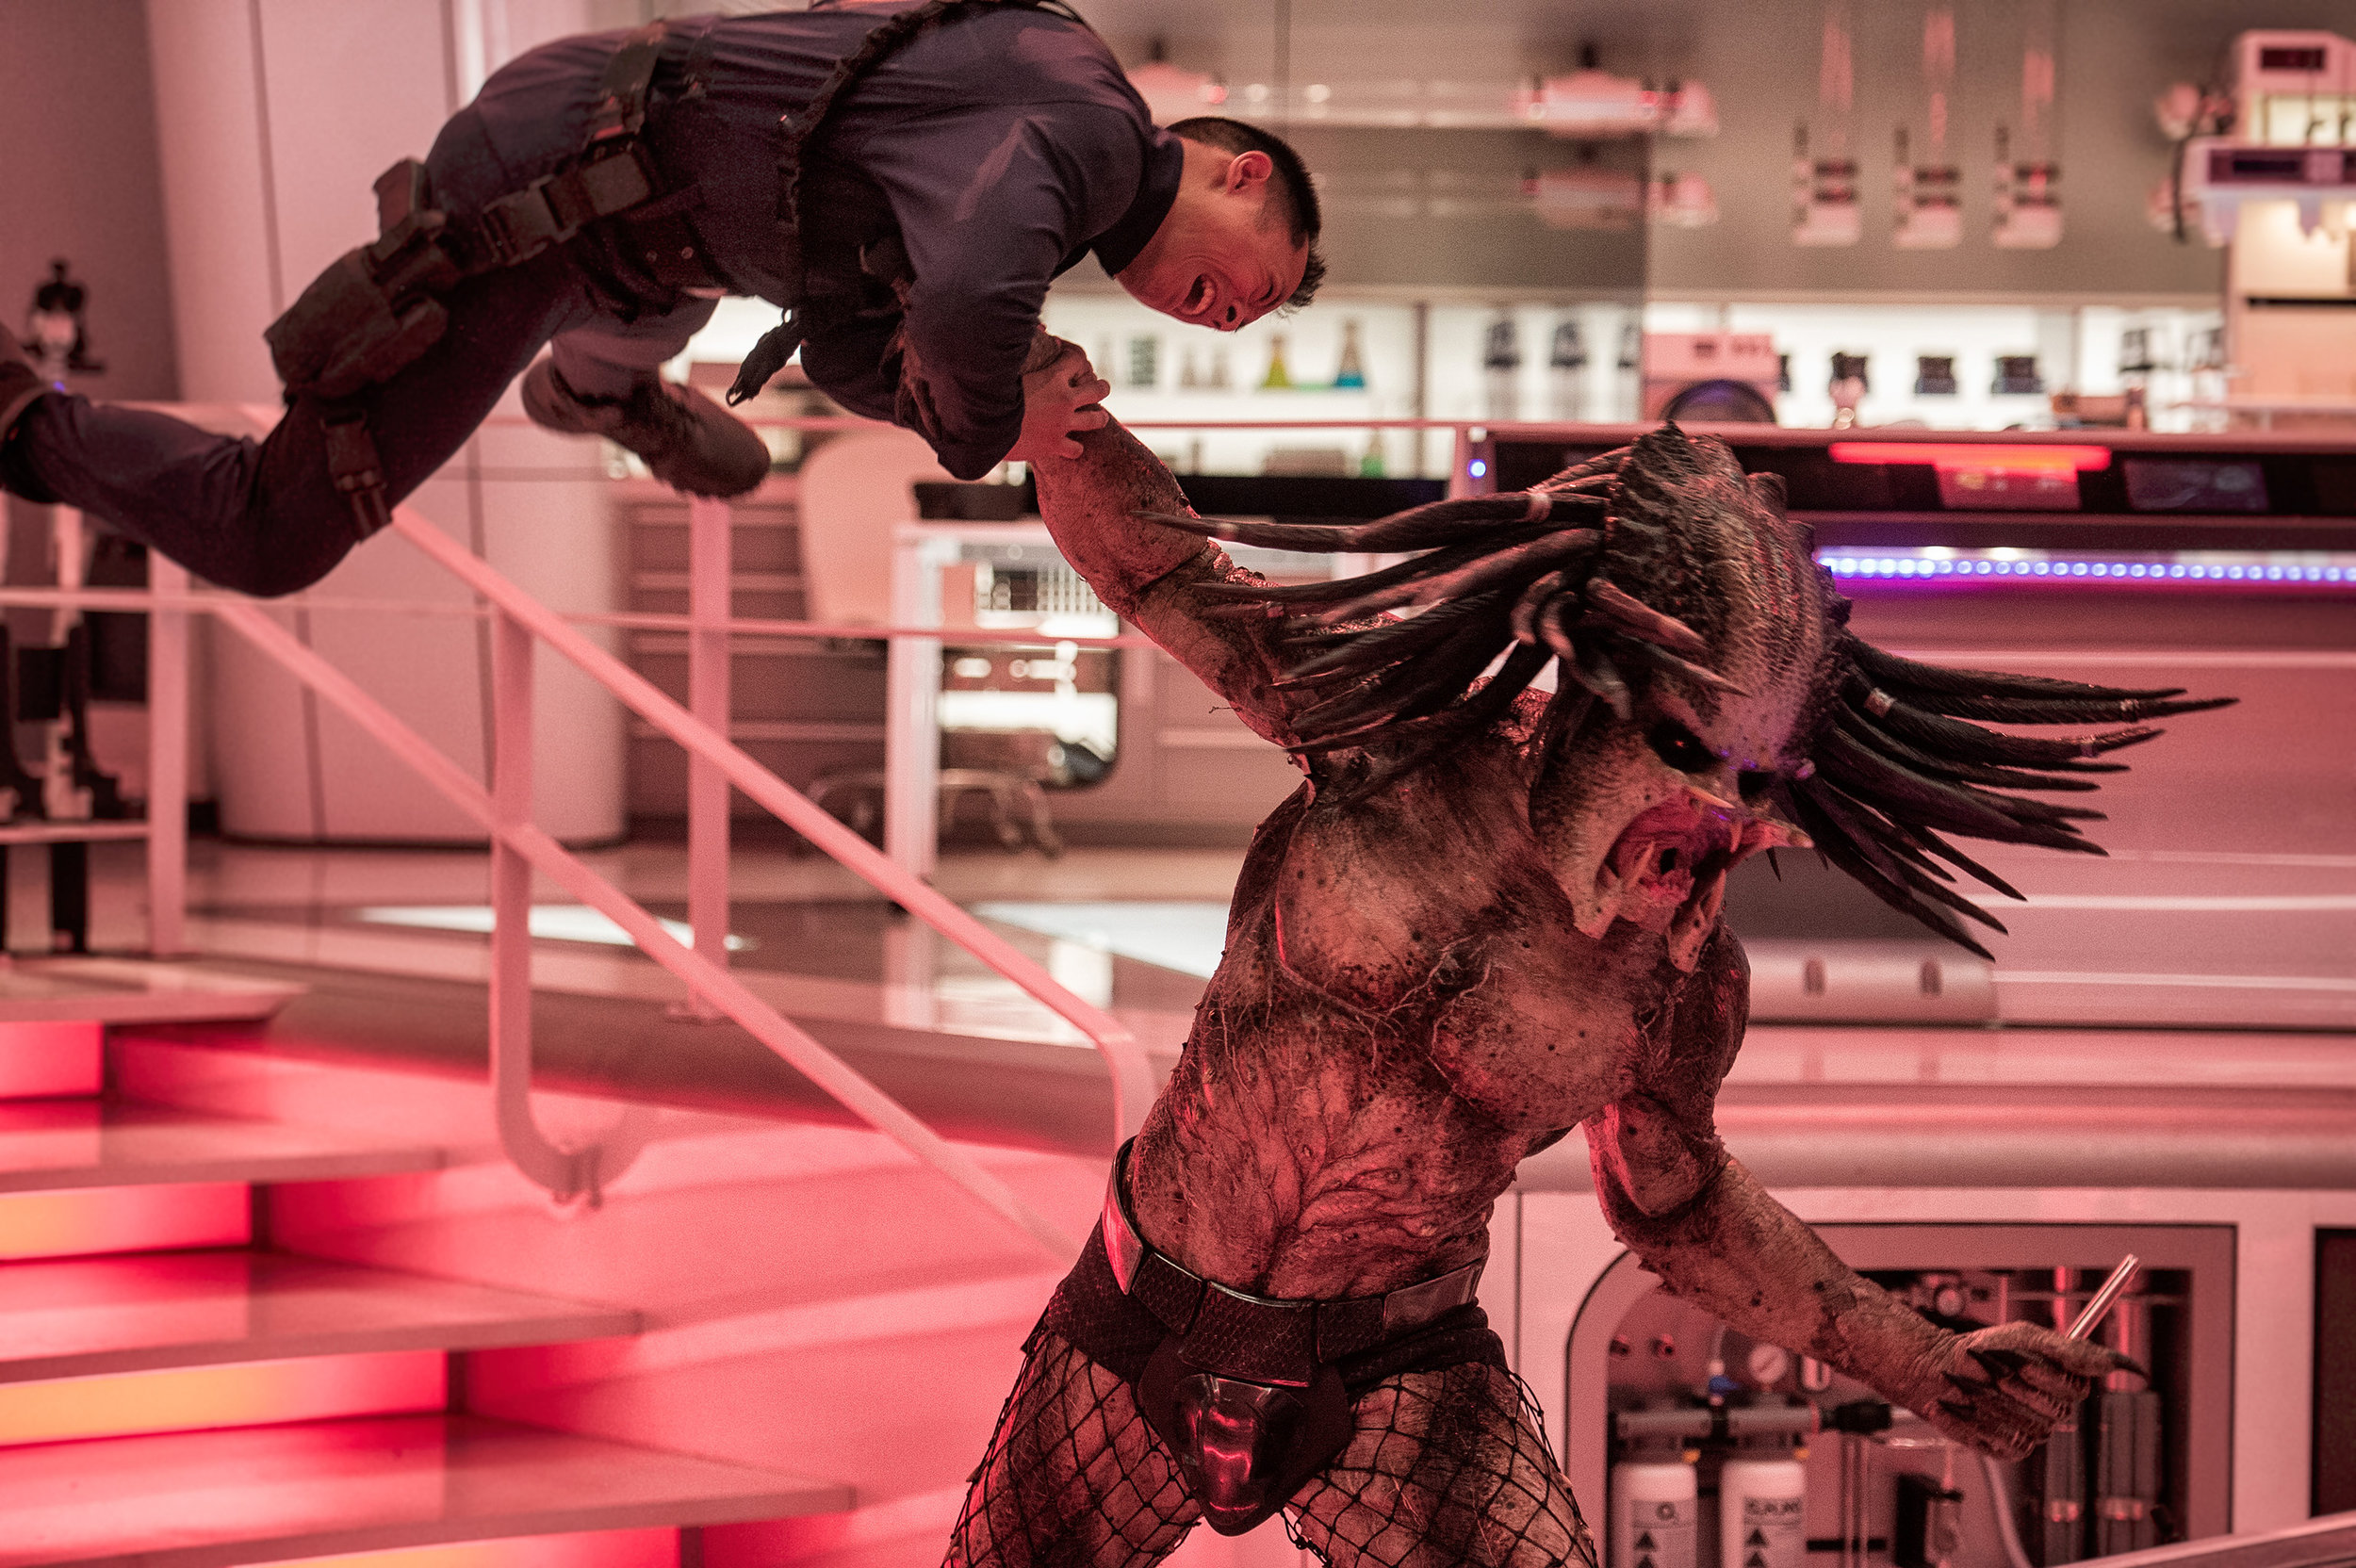 The Predator checks himself out of hospital. Time for a night on the town.